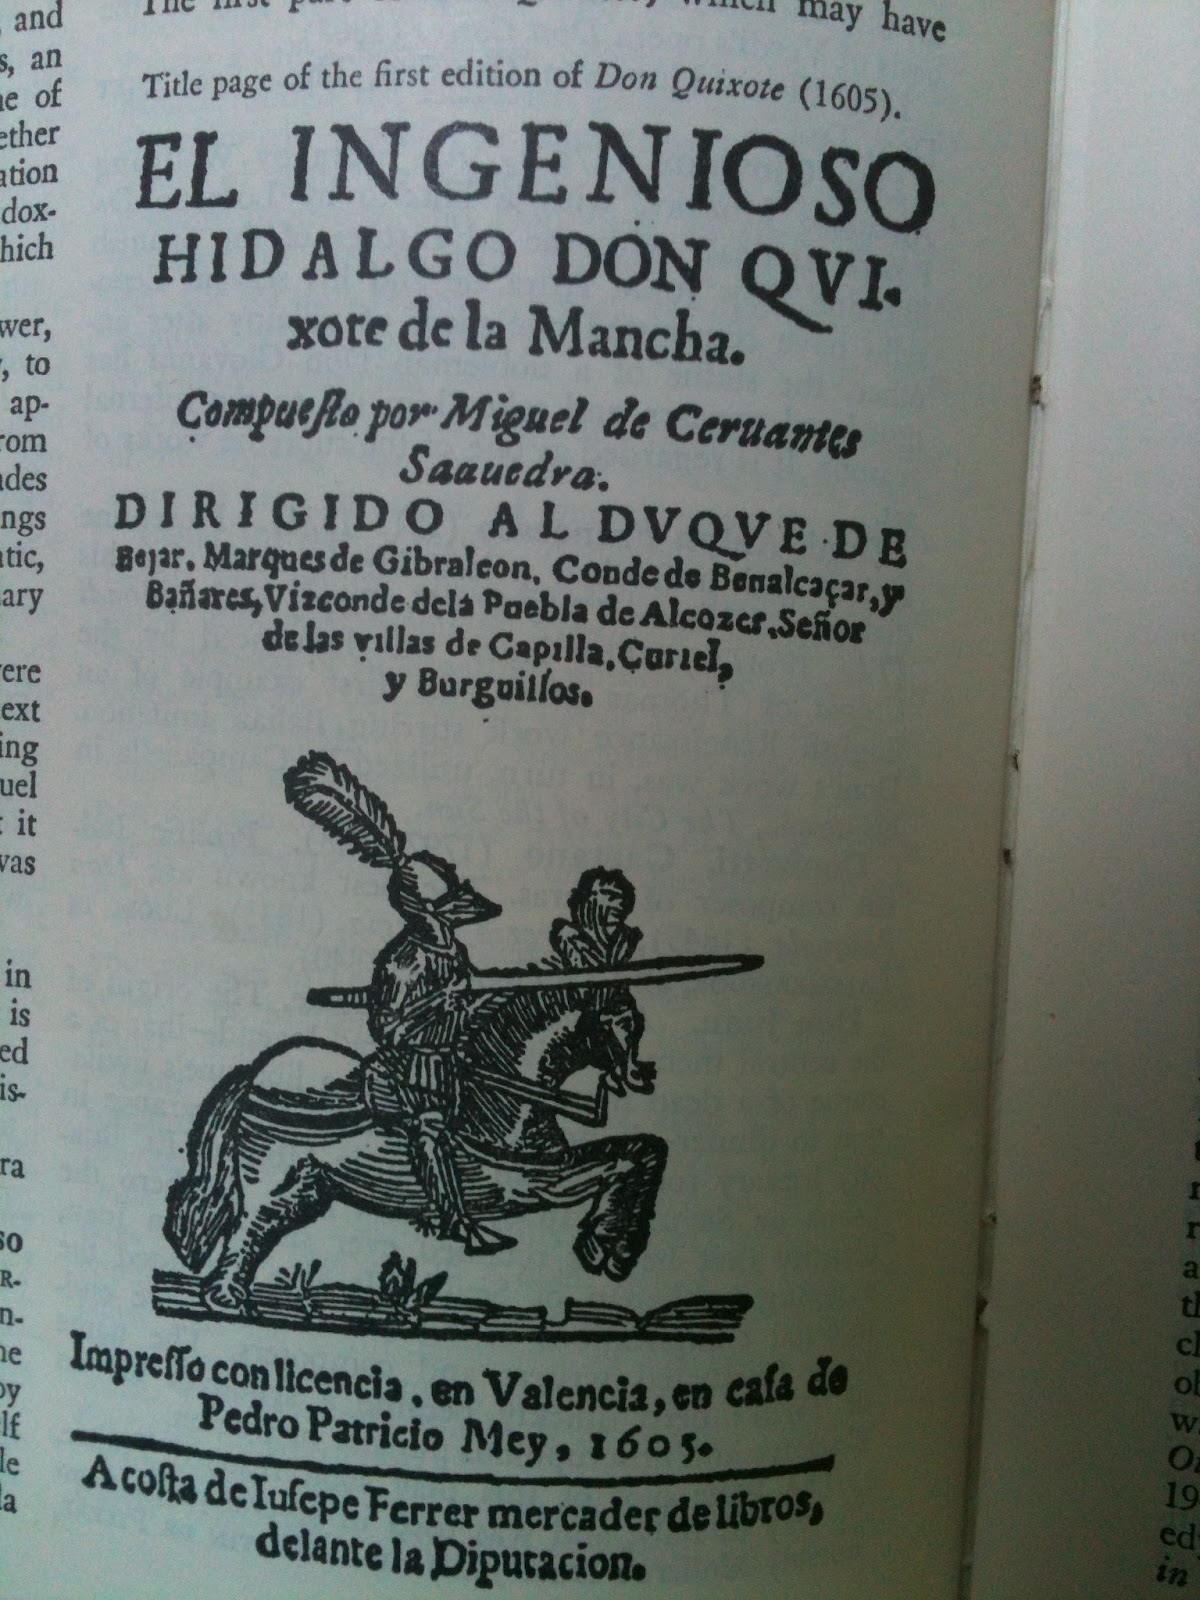 don quixote chivalry essay In this essay we will discuss about chivalry after reading this essay you will learn about:- 1 definition of chivalry 2 its nature and character of chivalry 3 origin and development of chivalry 4 decay of chivalry 5 contributions of chivalry essay contents: essay on the definition of chivalry essay on the nature and character [.